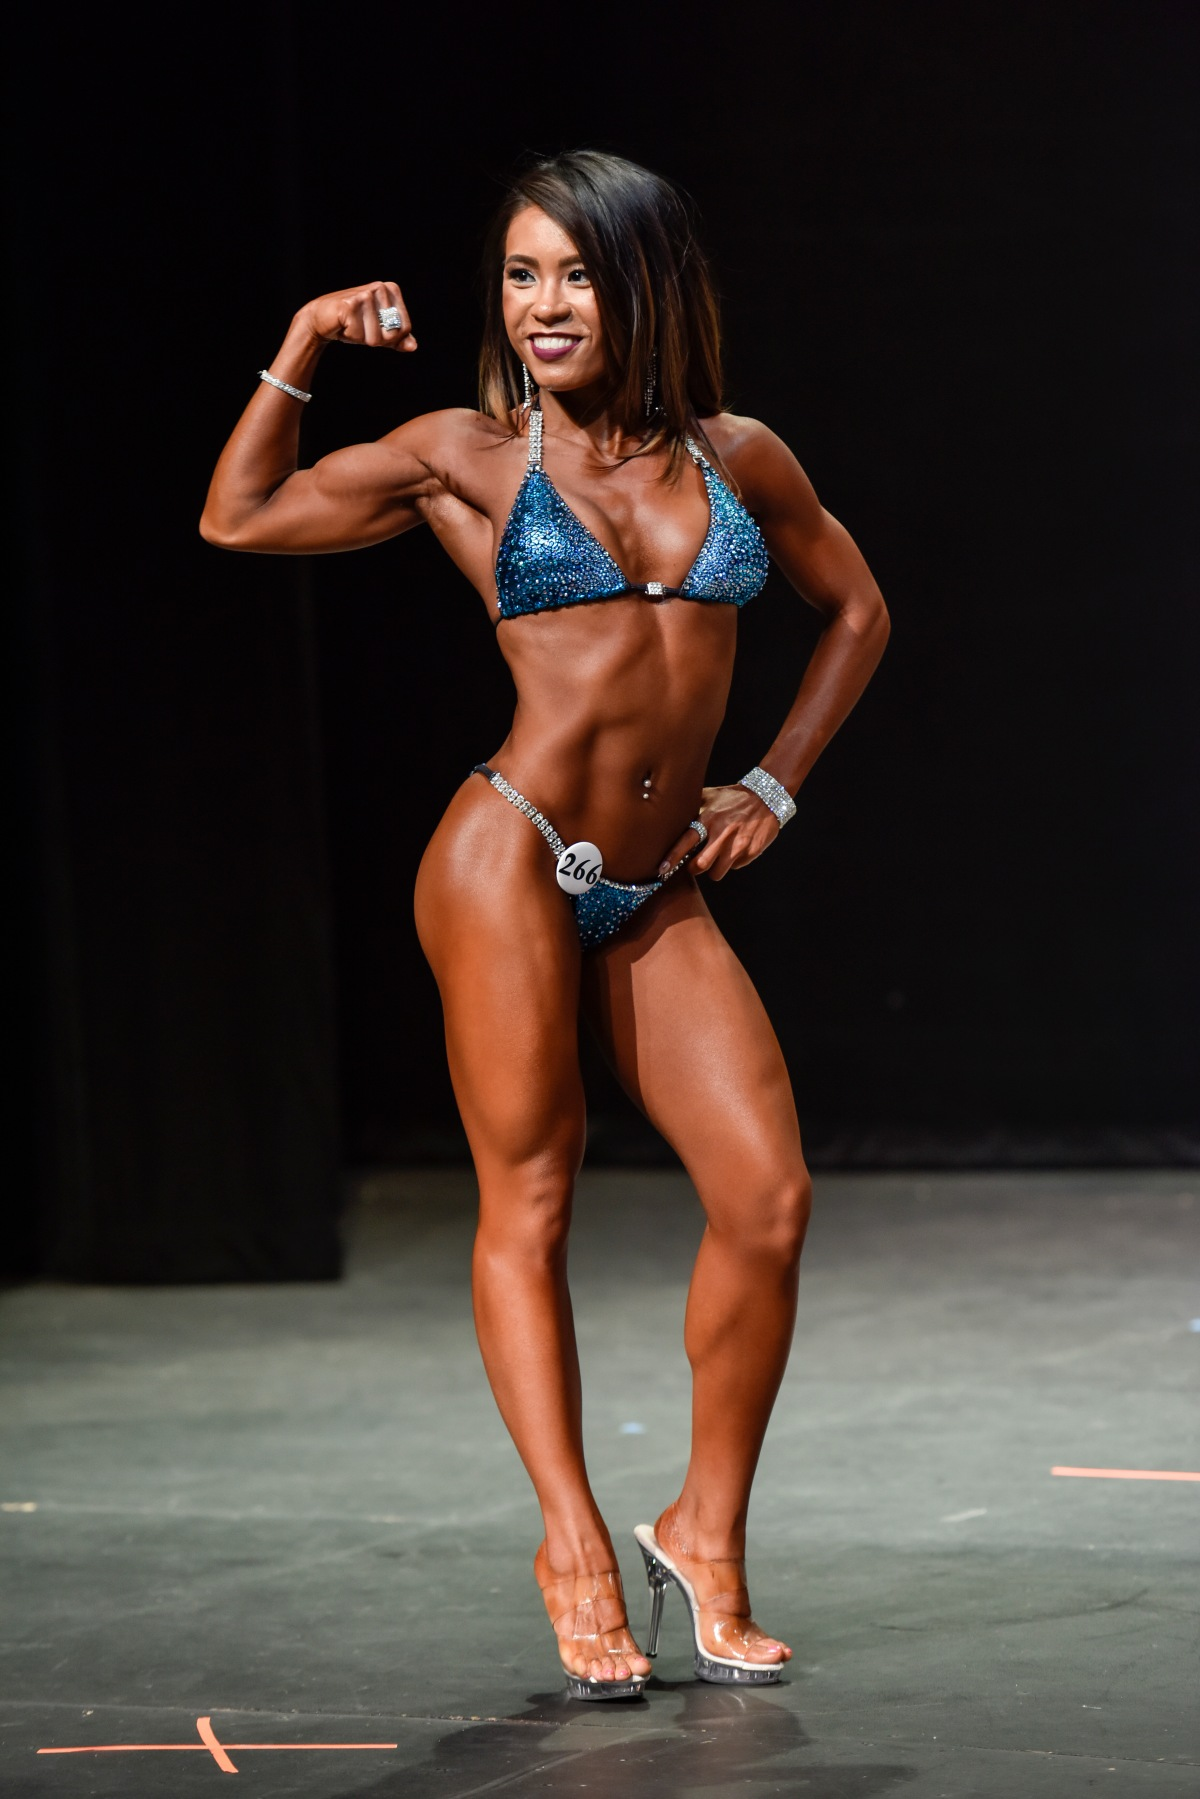 Single bicep pose at bikini fitness competition